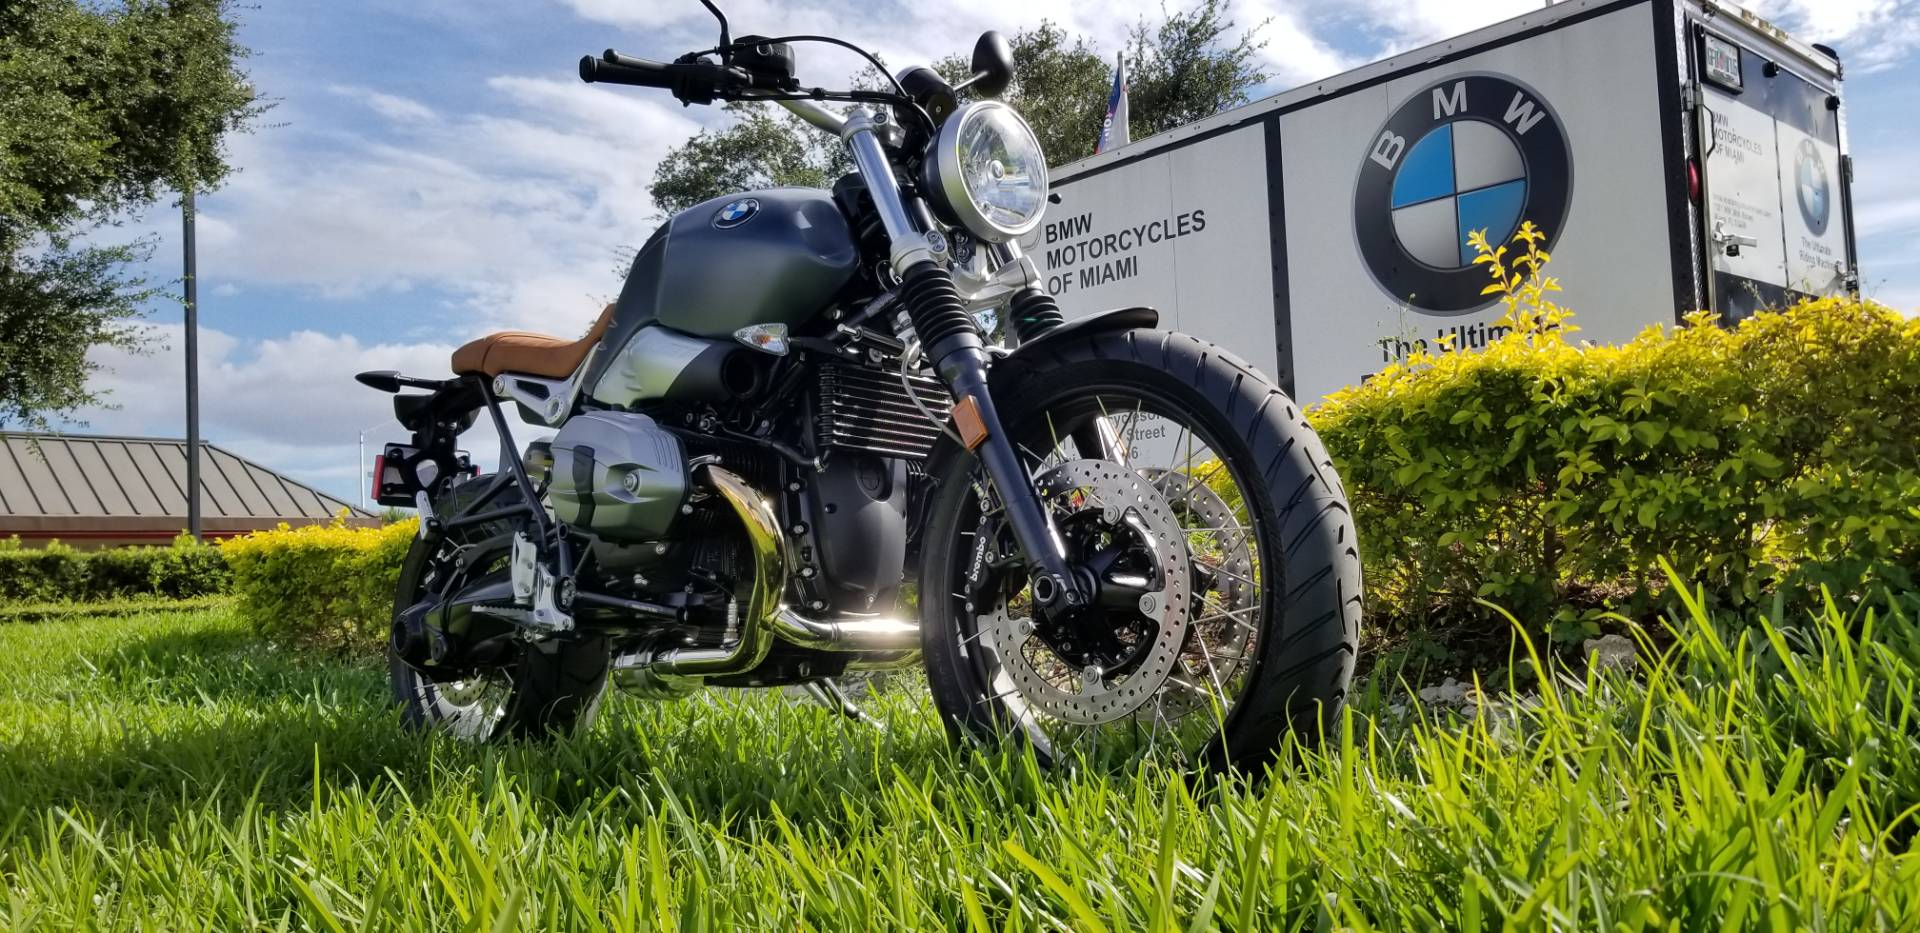 New 2019 BMW R NineT Scrambler for sale, BMW for sale, BMW Motorcycle Café Racer, new BMW Scrambler, Srambler, BMW. BMW Motorcycles of Miami, Motorcycles of Miami - Photo 26